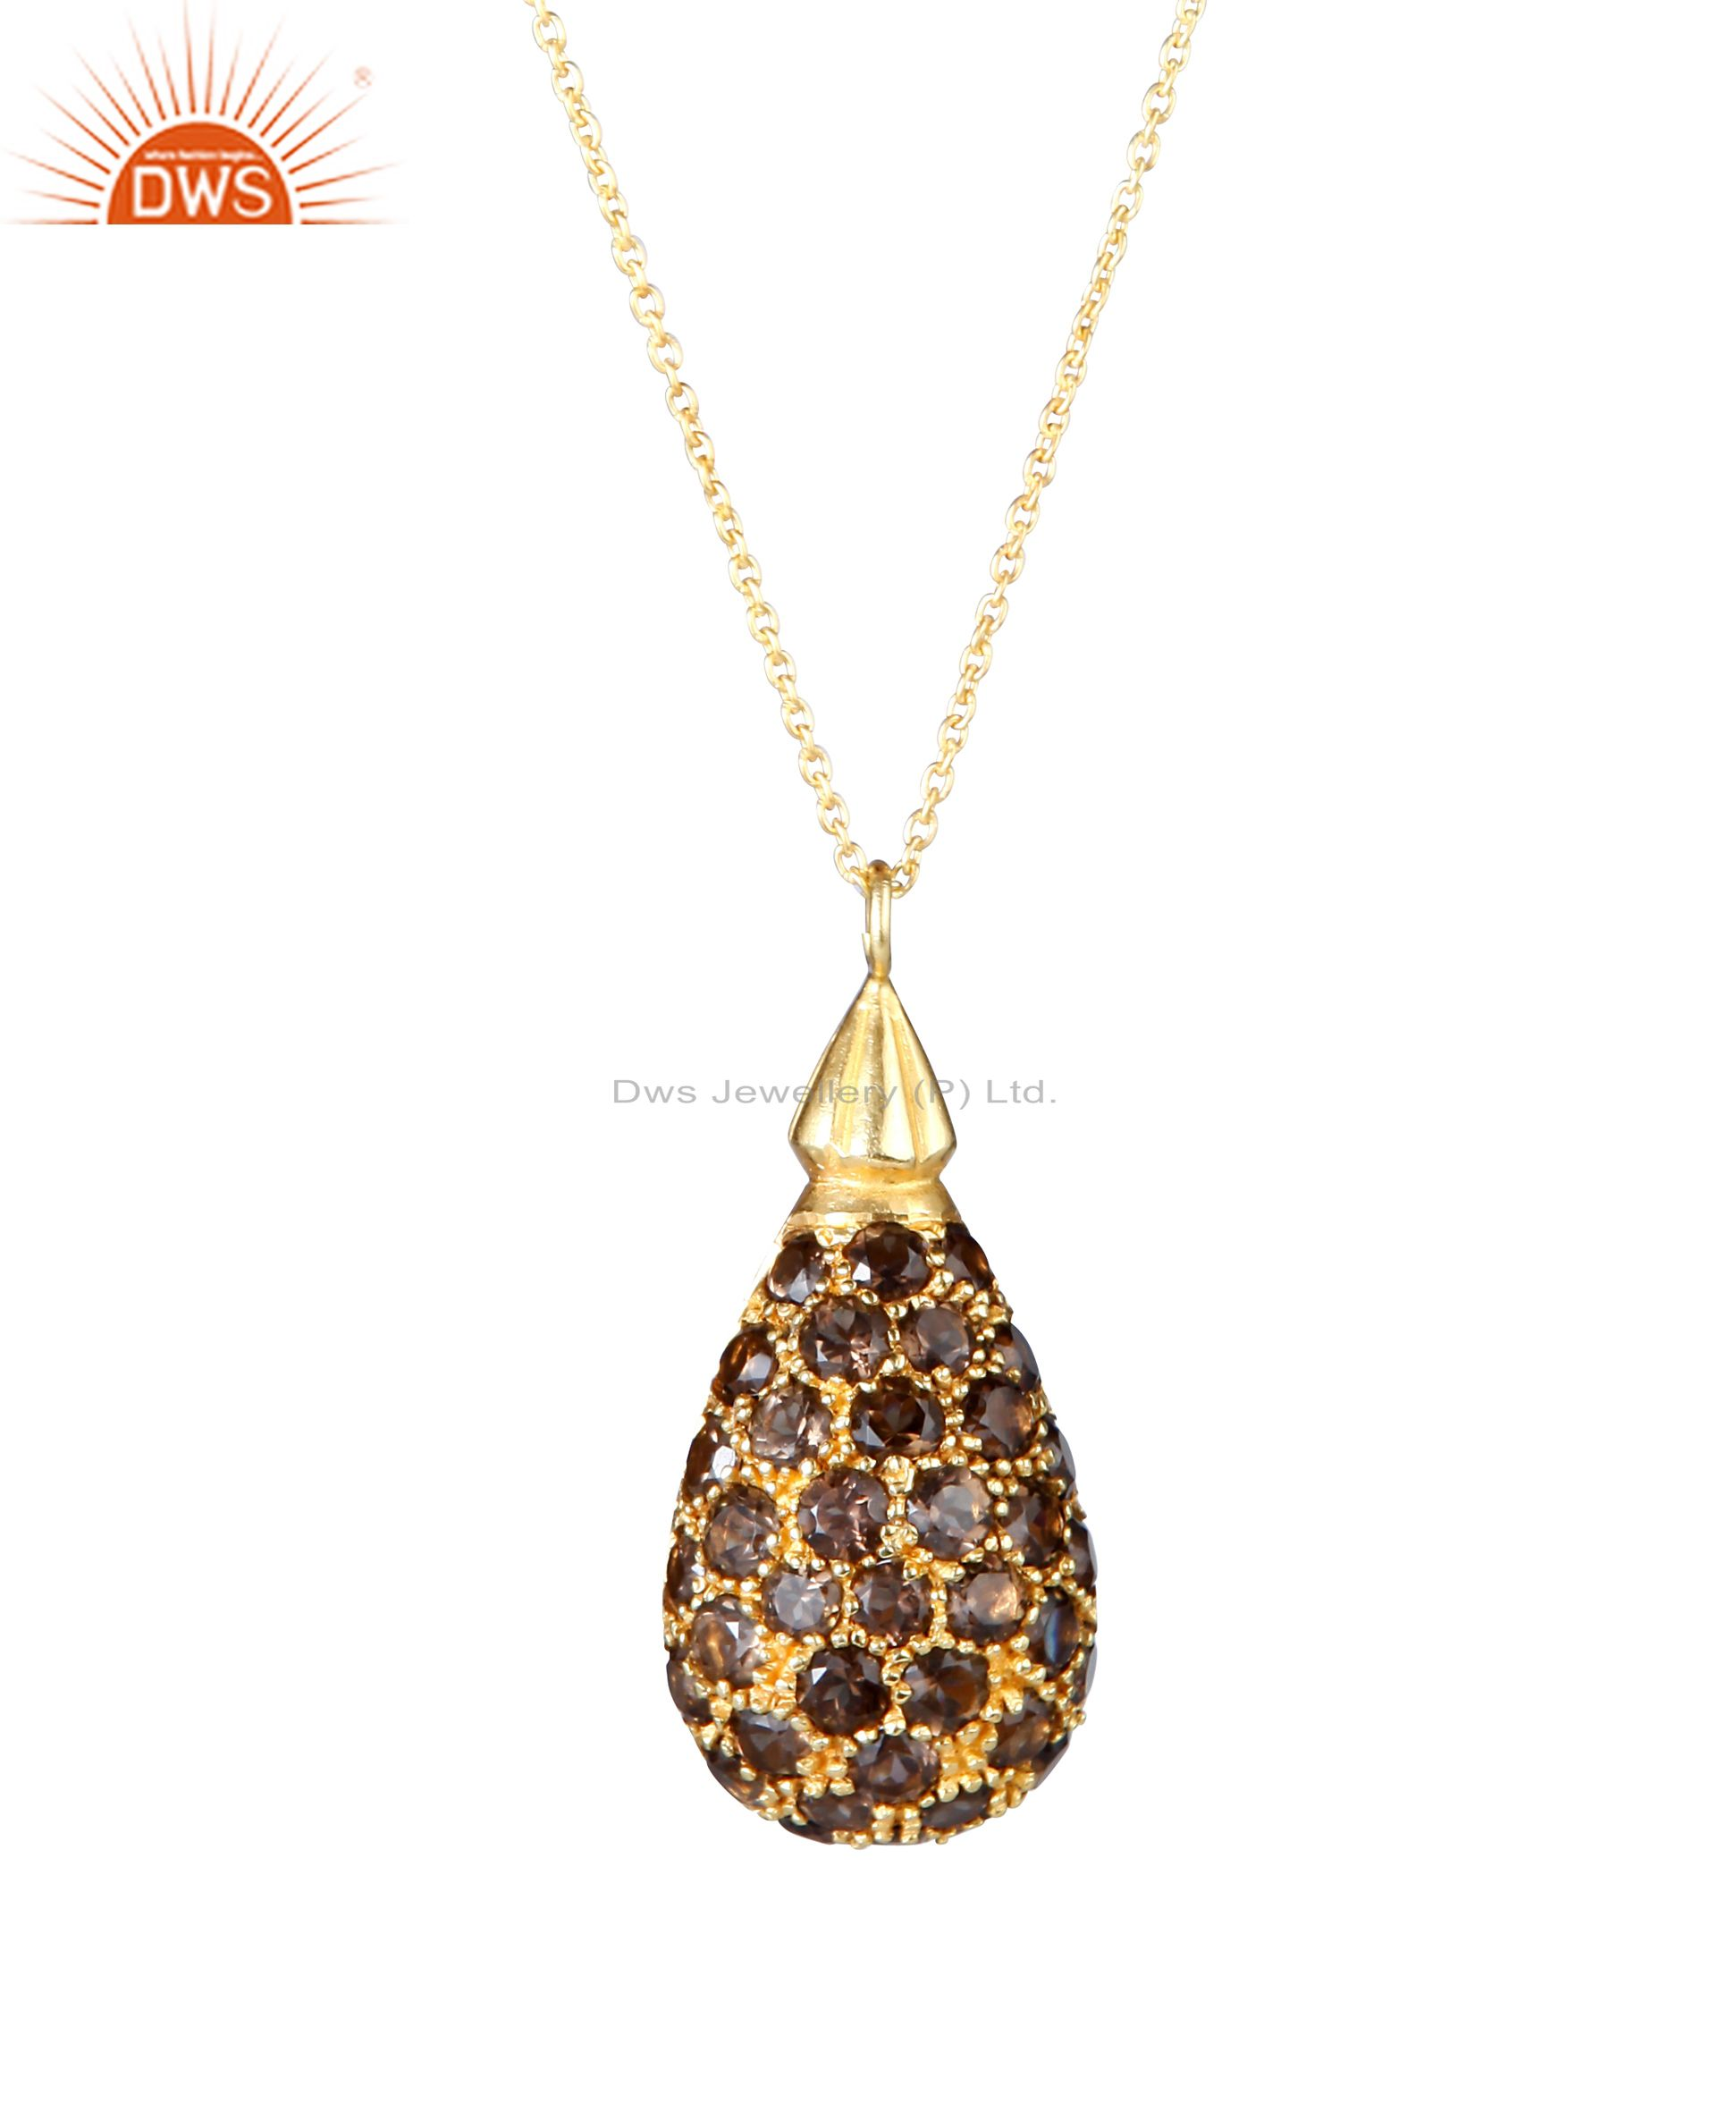 18K Yellow Gold Plated Sterling Silver Smoky Quartz Drop Pendant With Chain